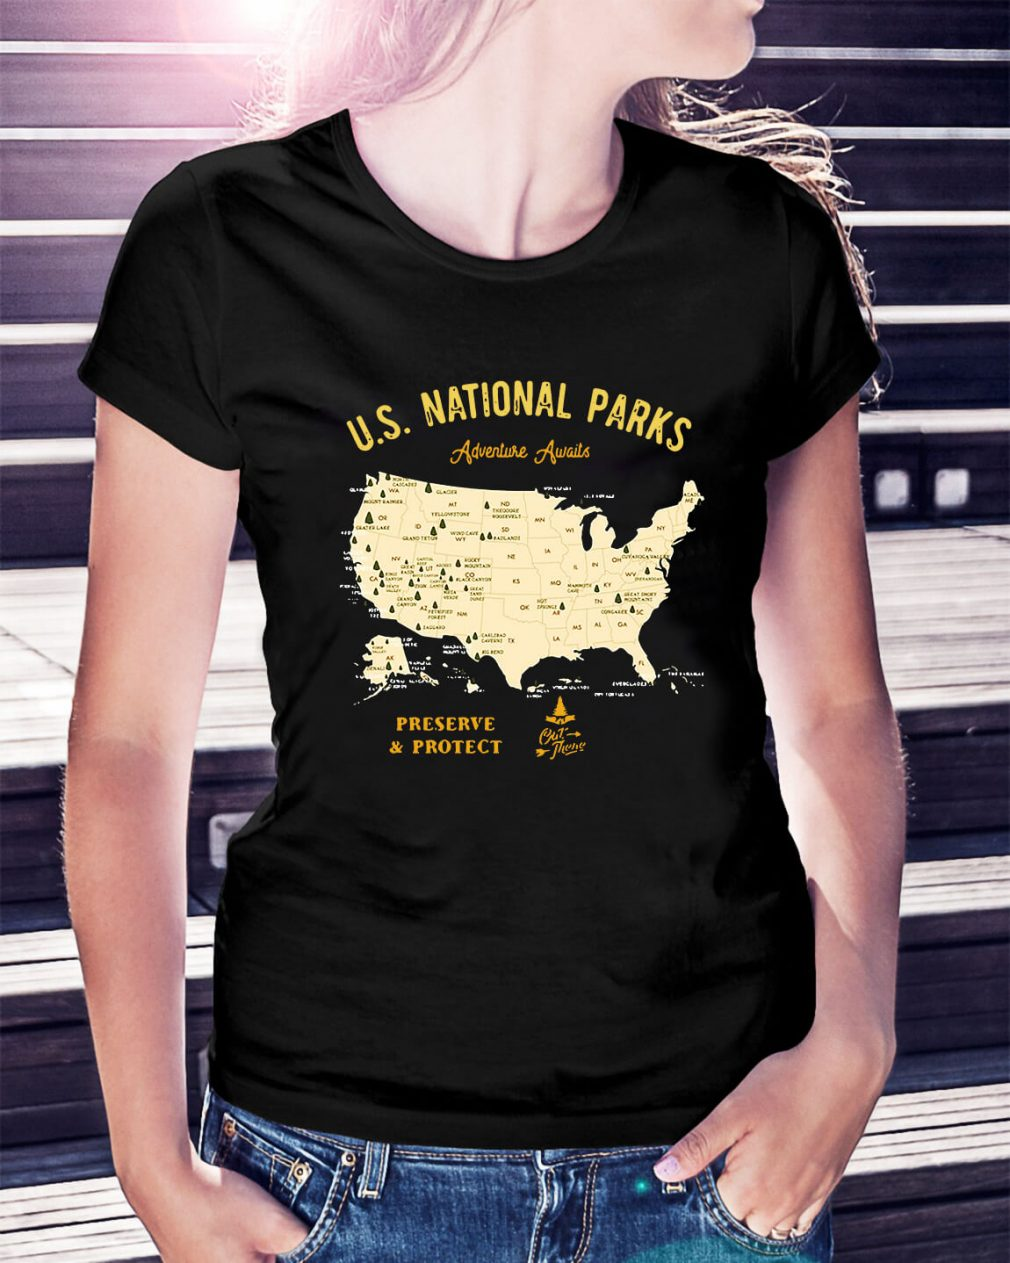 US national parks Adventure Awaits preserve and protect Ladies Tee